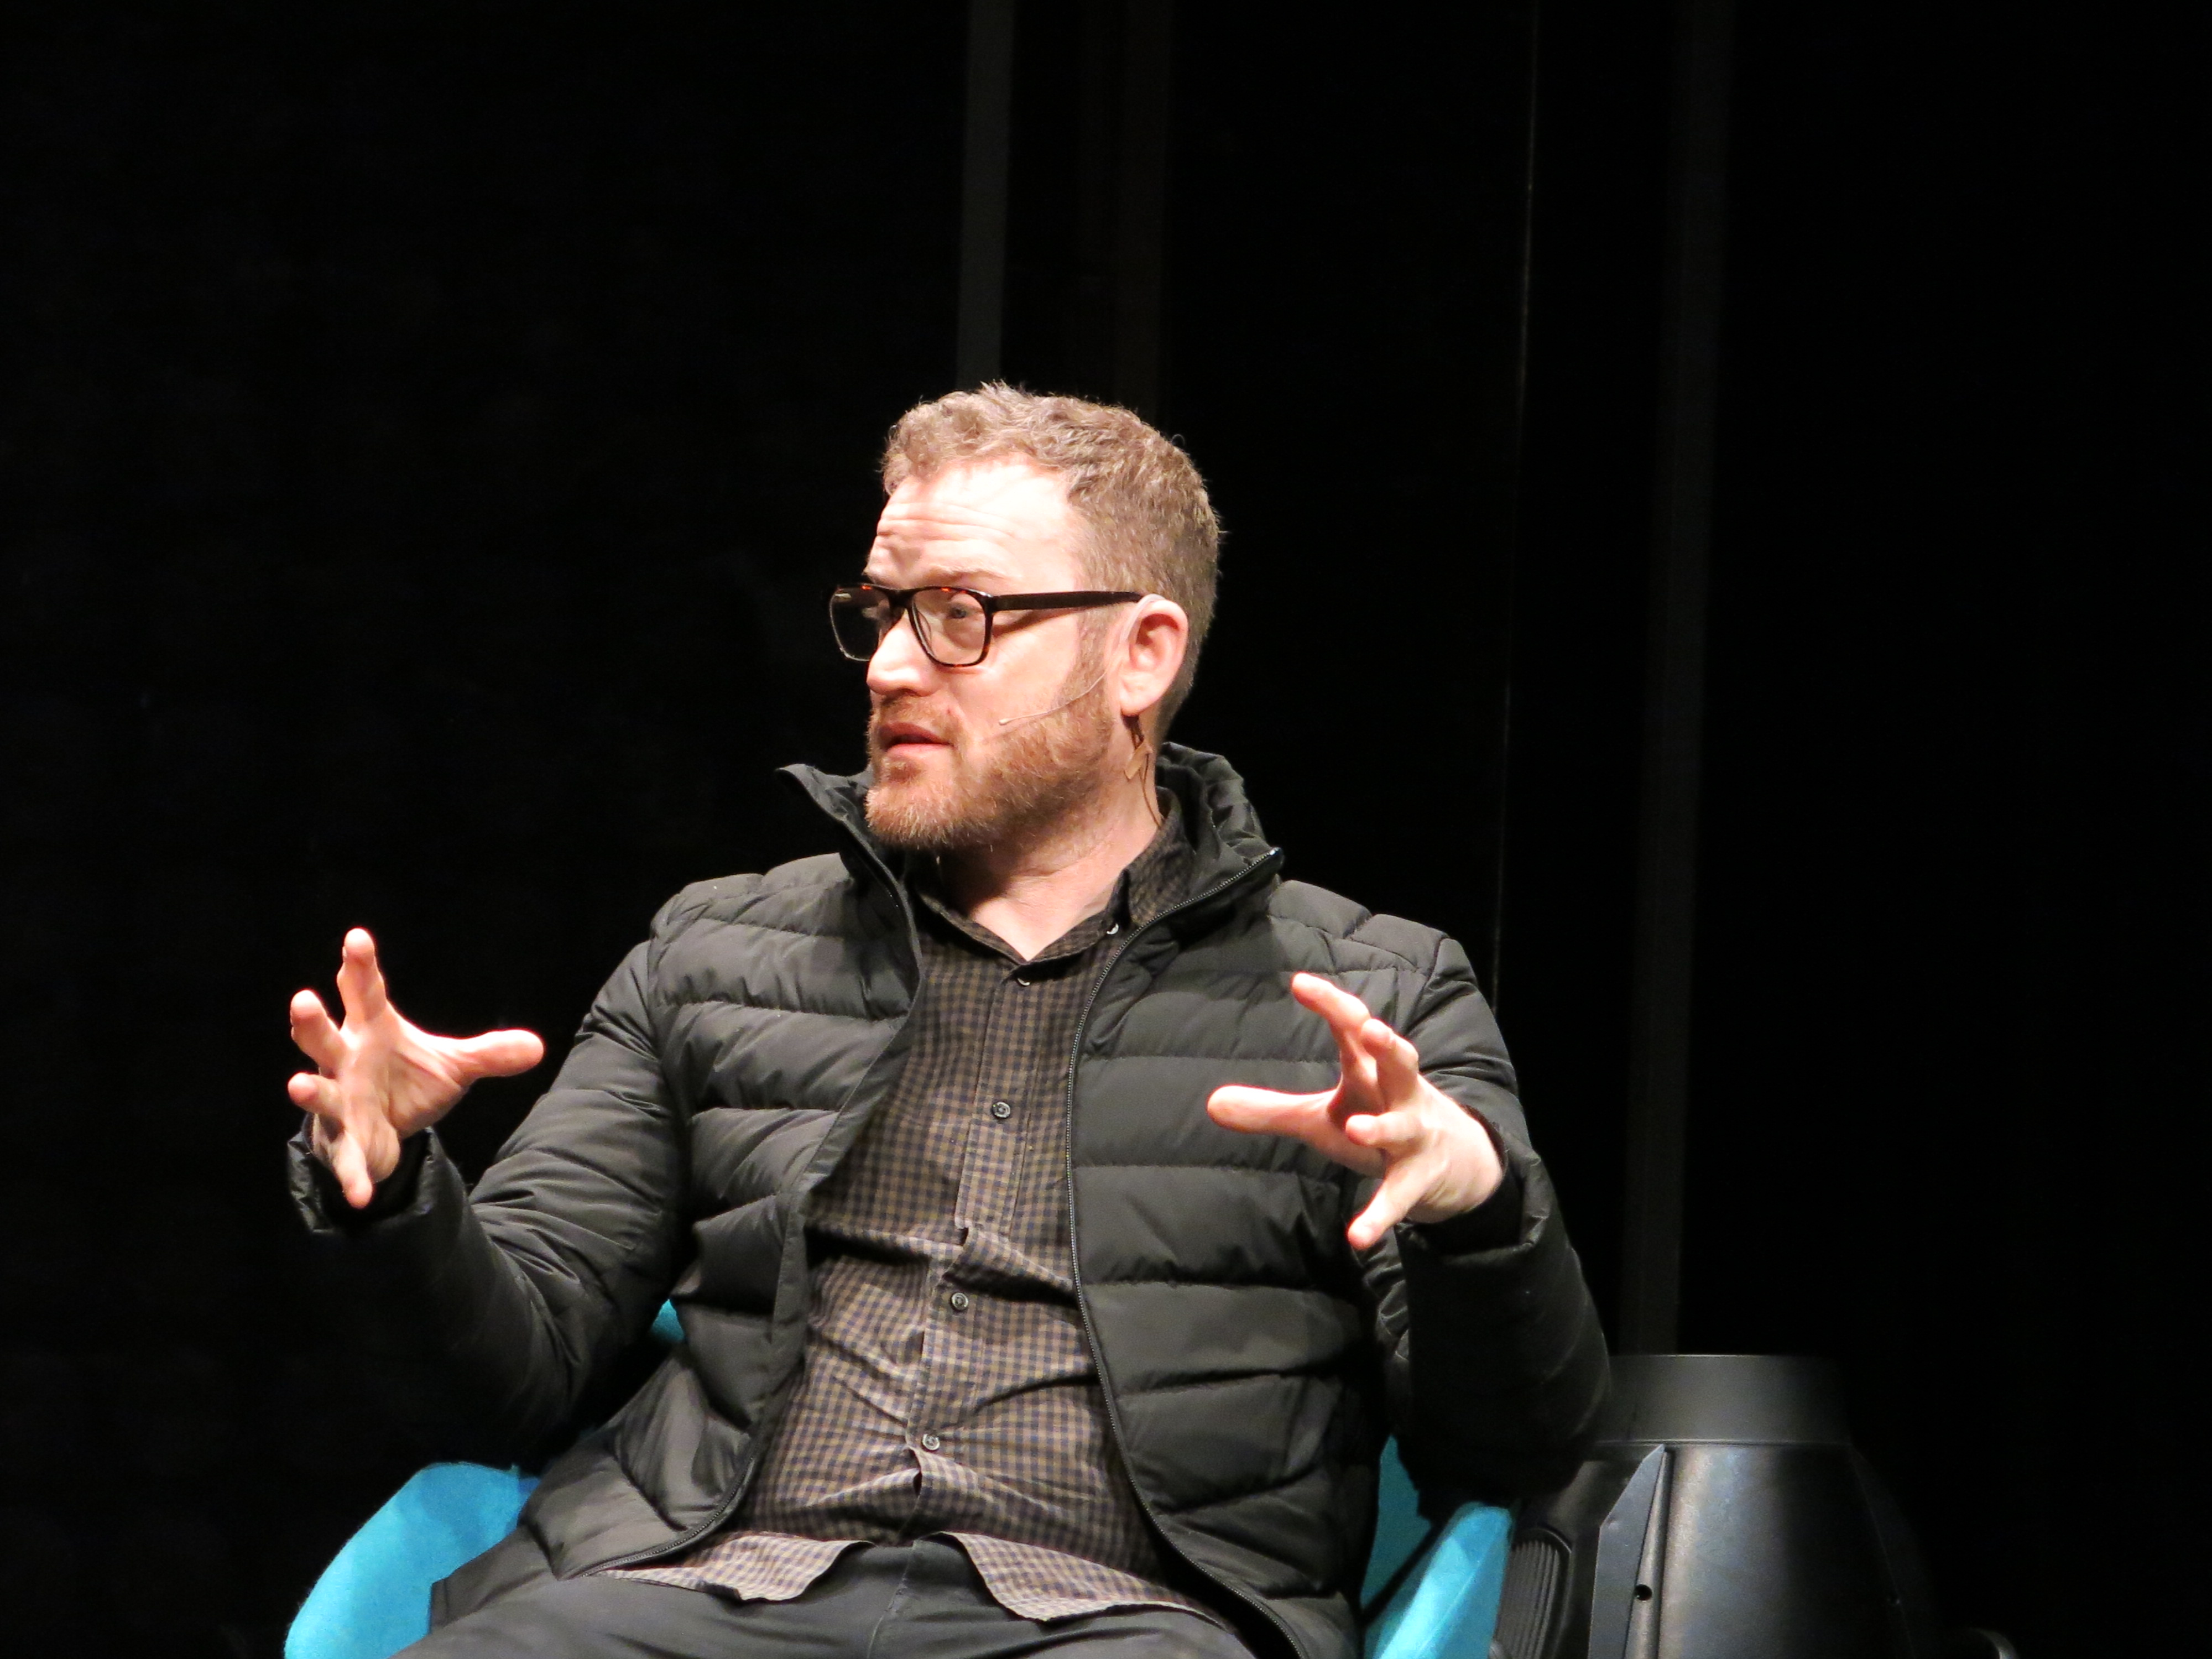 John Safran gestures with both hands while seated on a stage in Christchurch.